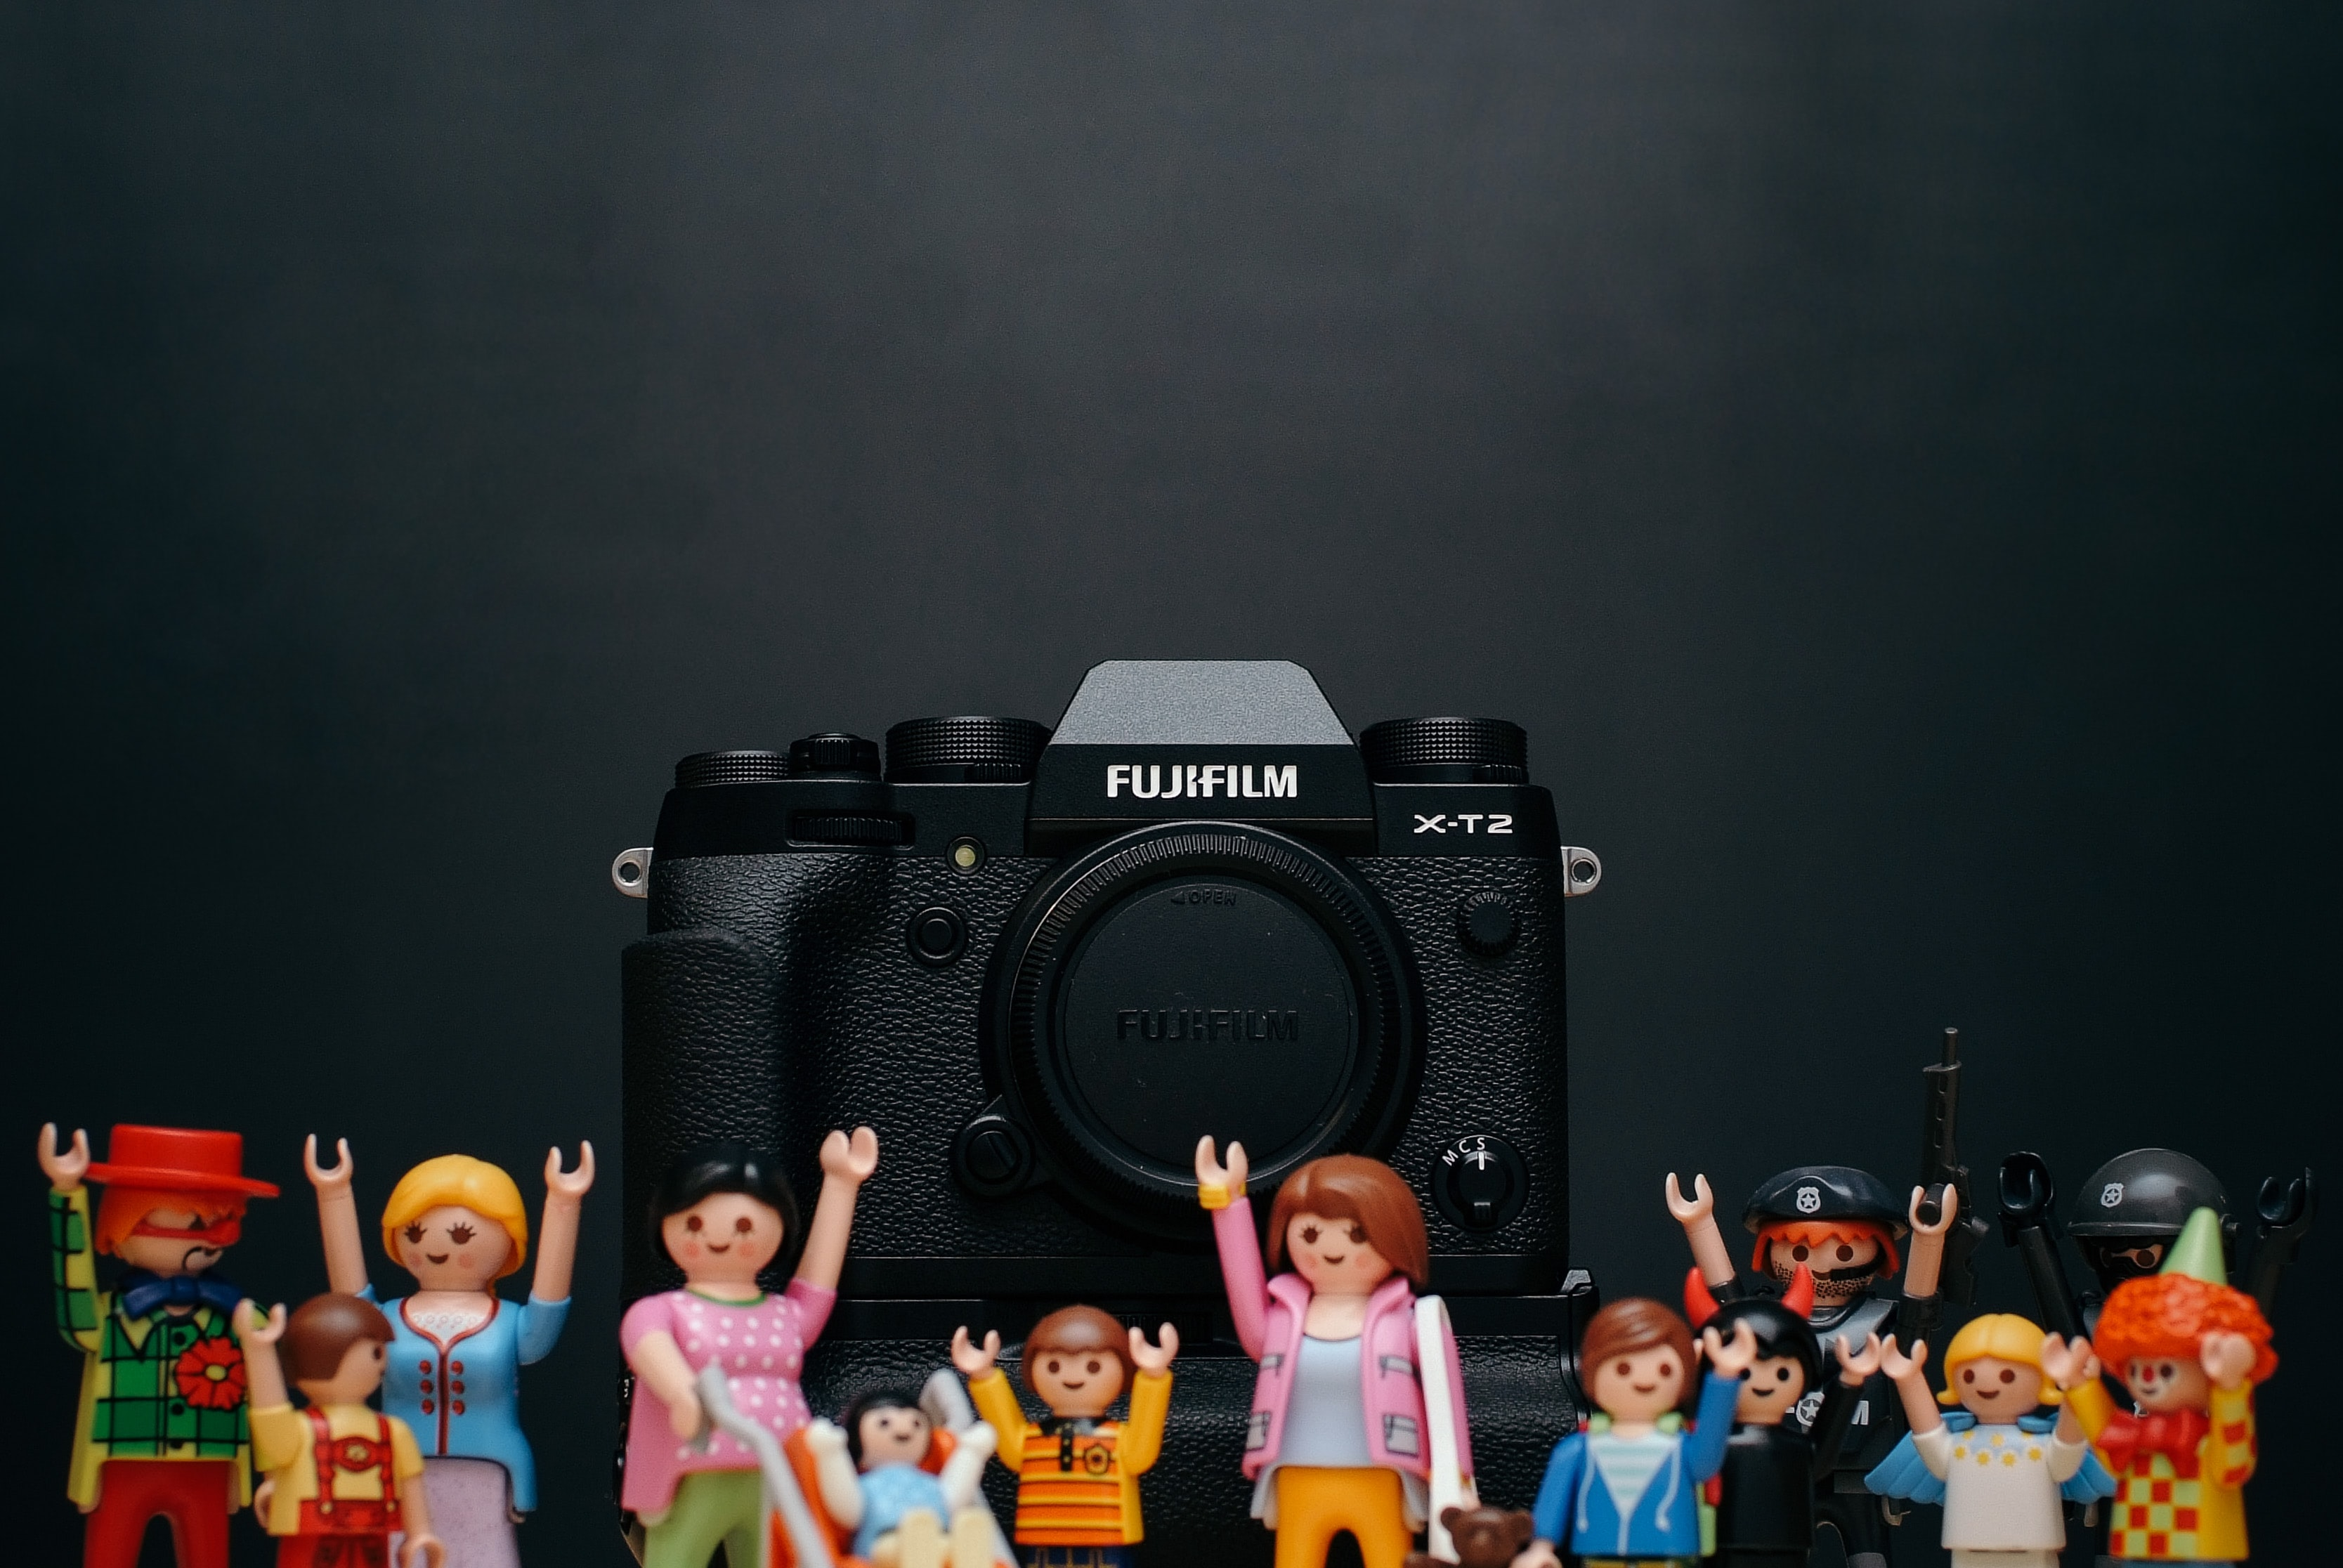 black Fujifilm camera body with minecraft toy lot